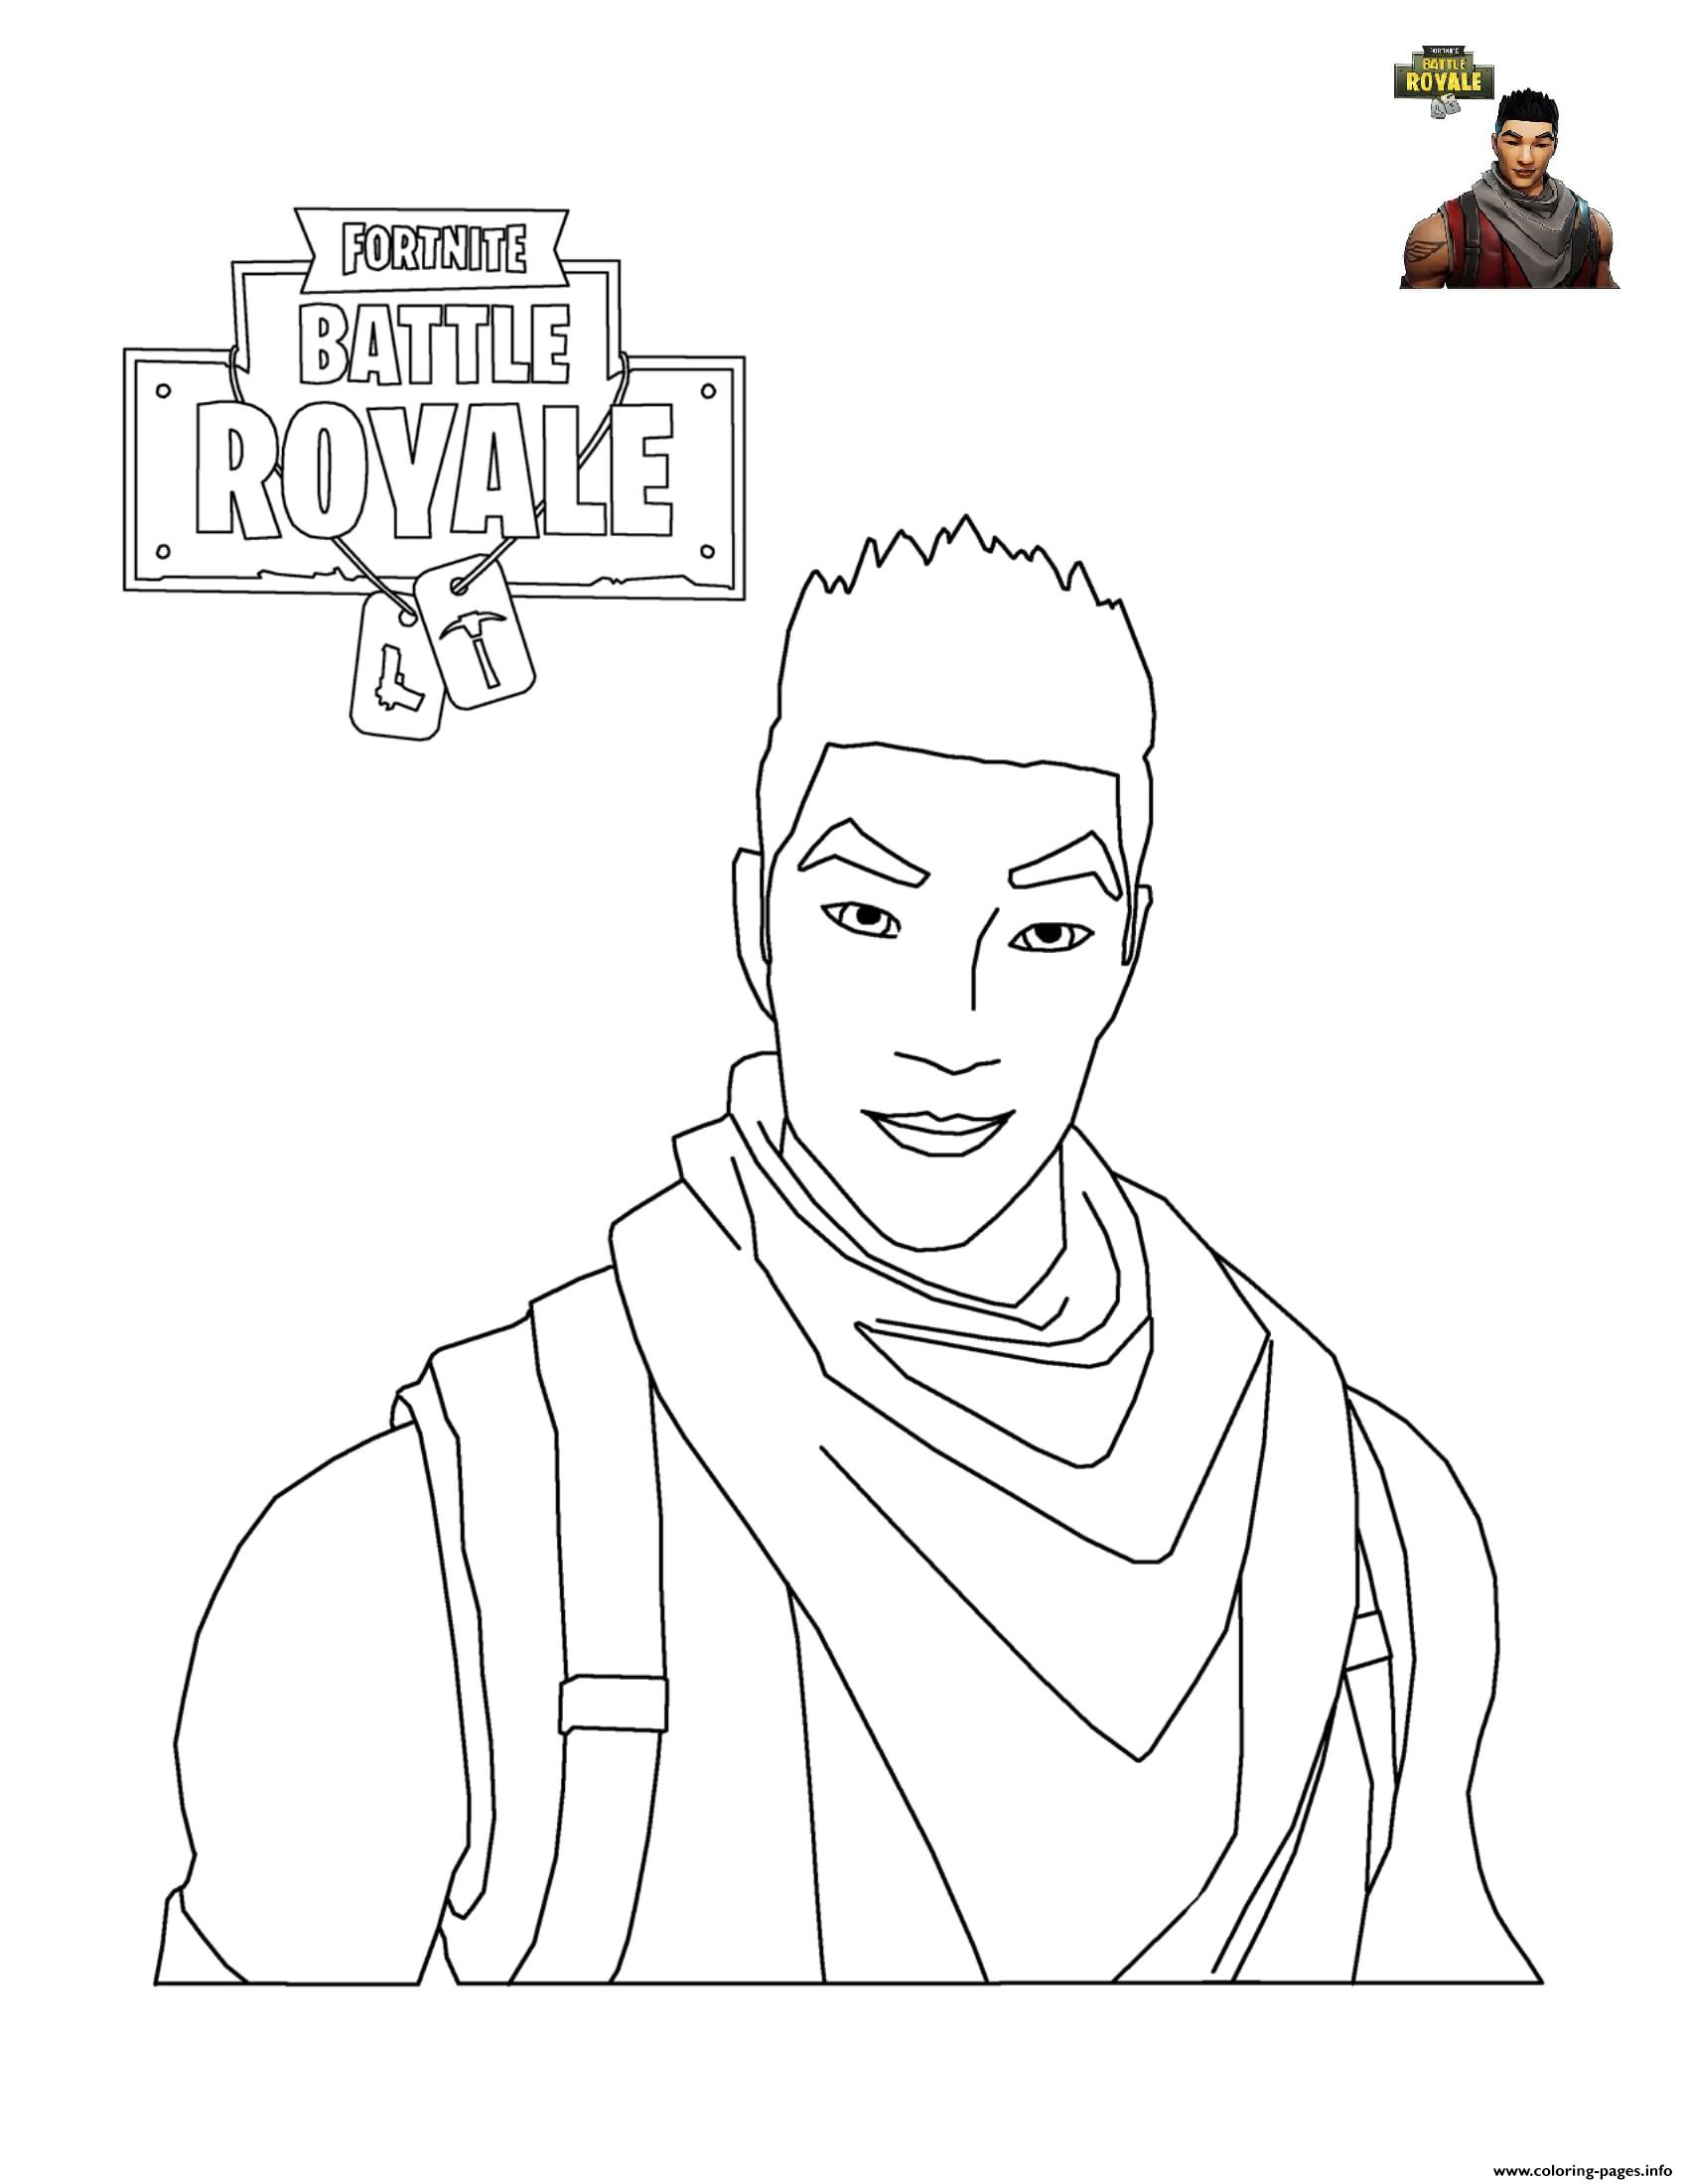 character coloring pages Fortnite Character Coloring Pages Printable character coloring pages